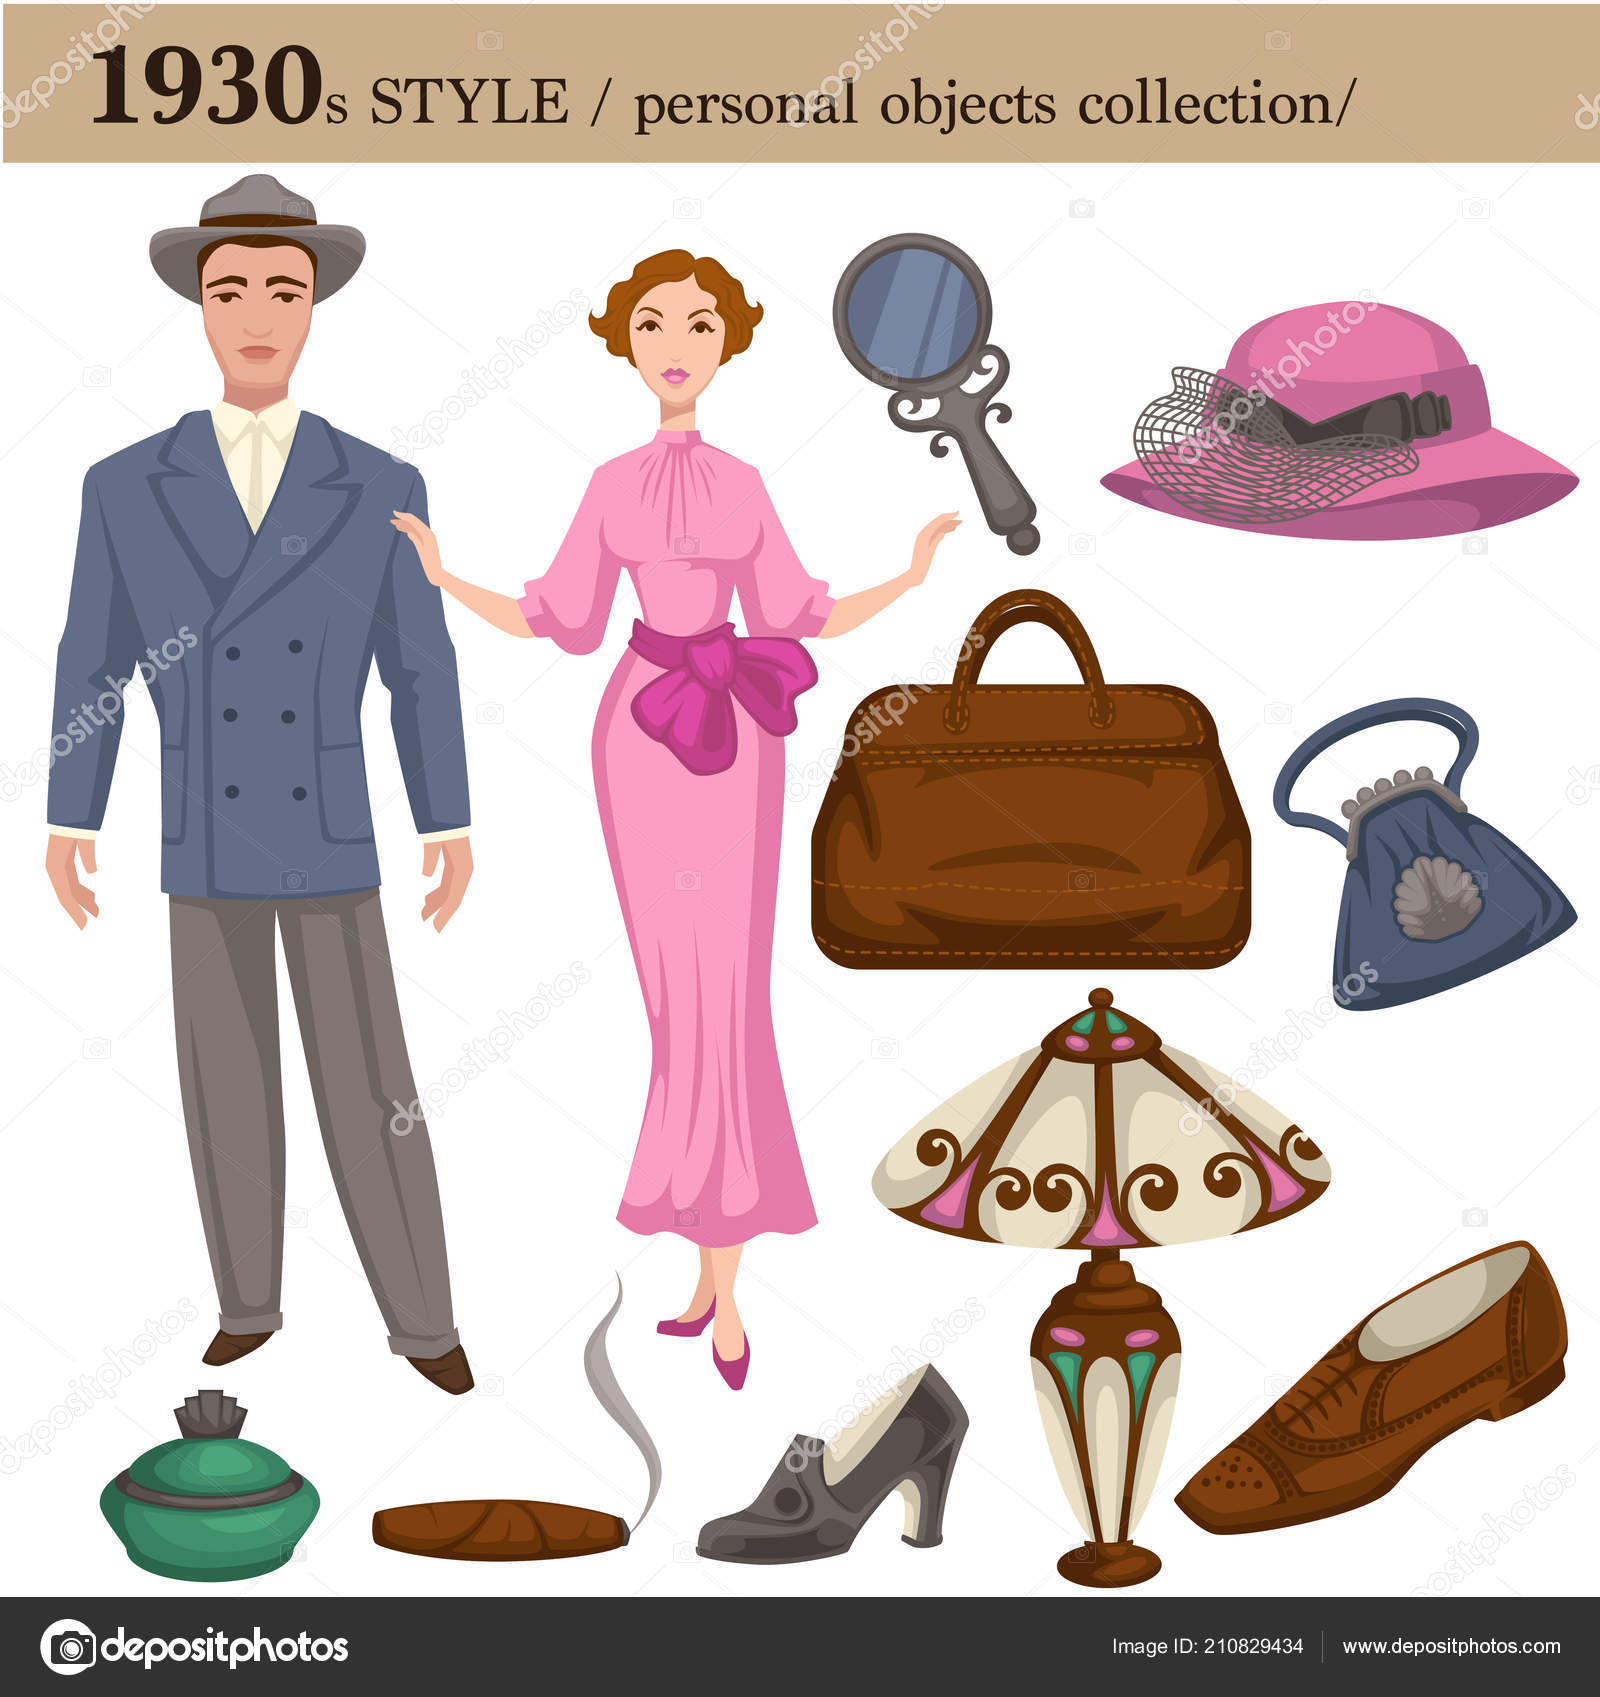 b11507801bd 1930 fashion style of man and woman clothes garments and personal objects  collection. Vector retro dress or suit with shoes